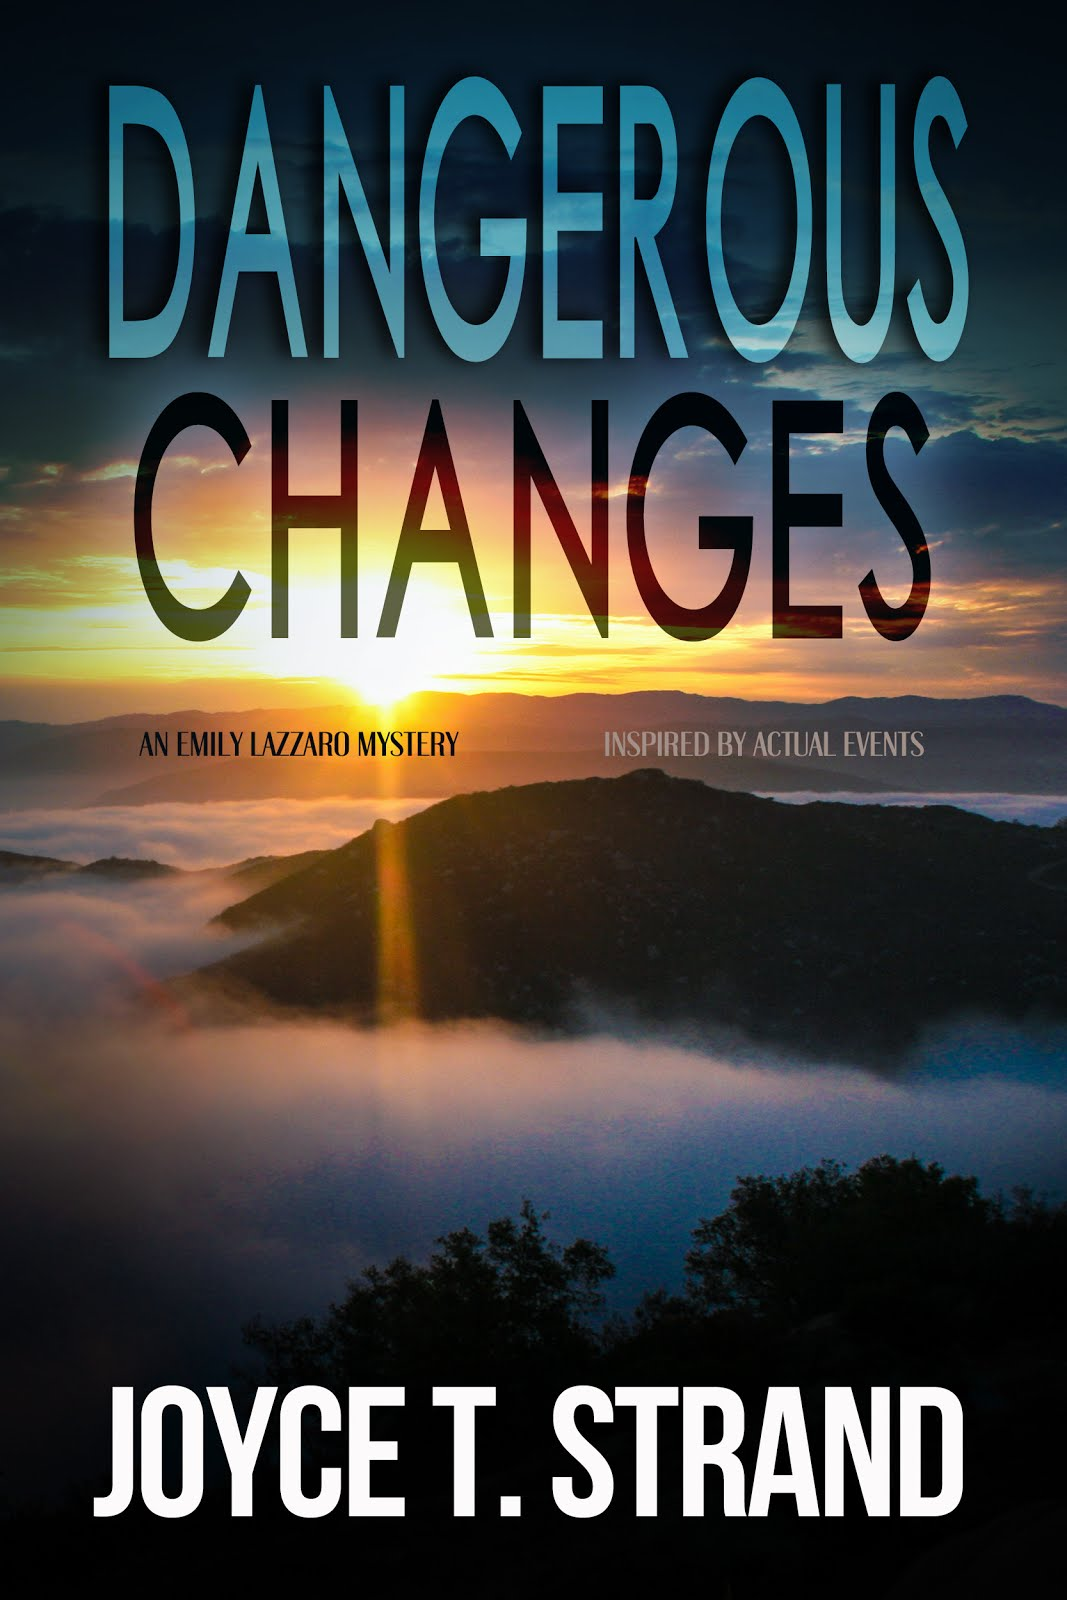 Dangerous Changes